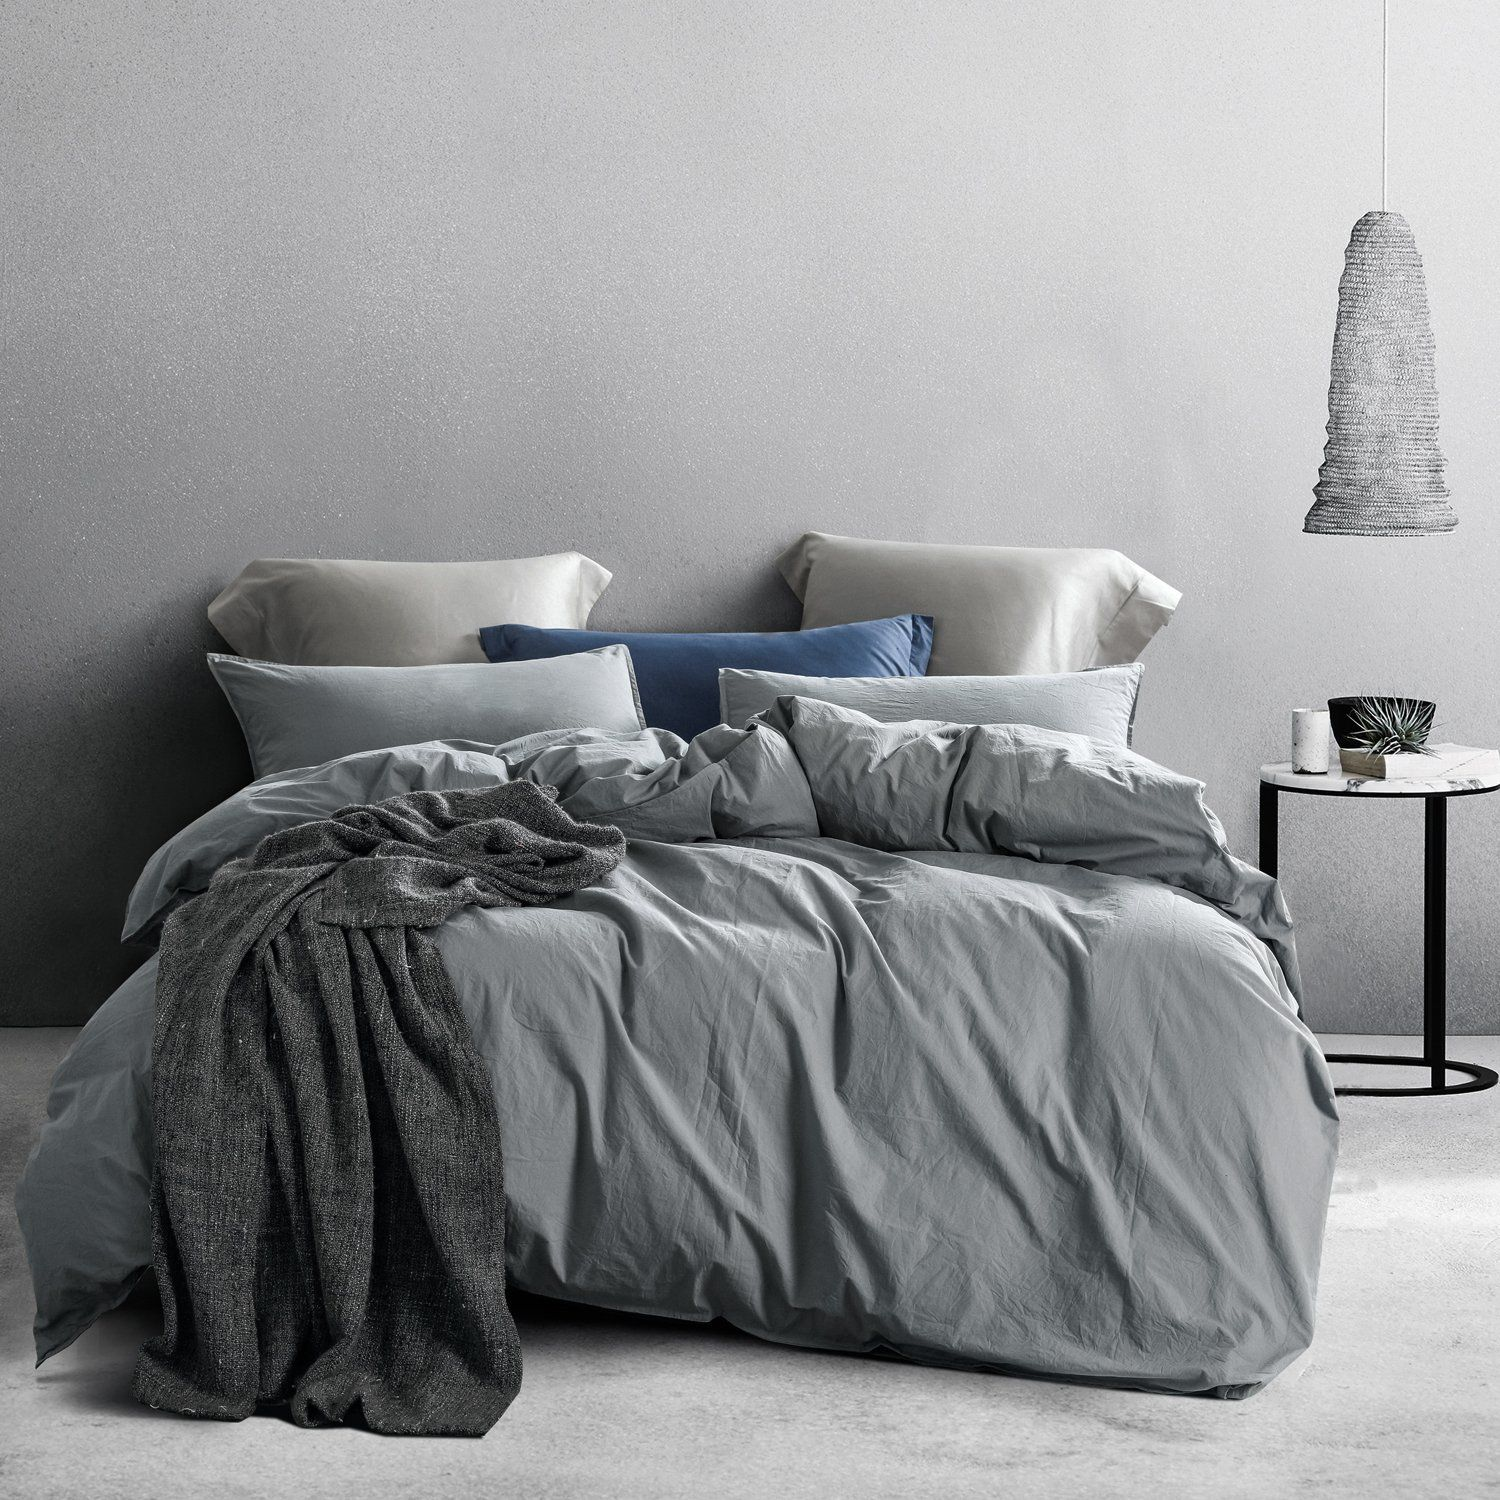 Grey Bedding And Matching Curtains Ntbay 100 Washed Cotton 3 Pieces Duvet Cover Set Vintage Gray Duvet Cover Duvet Cover Sets Matching Bedding And Curtains